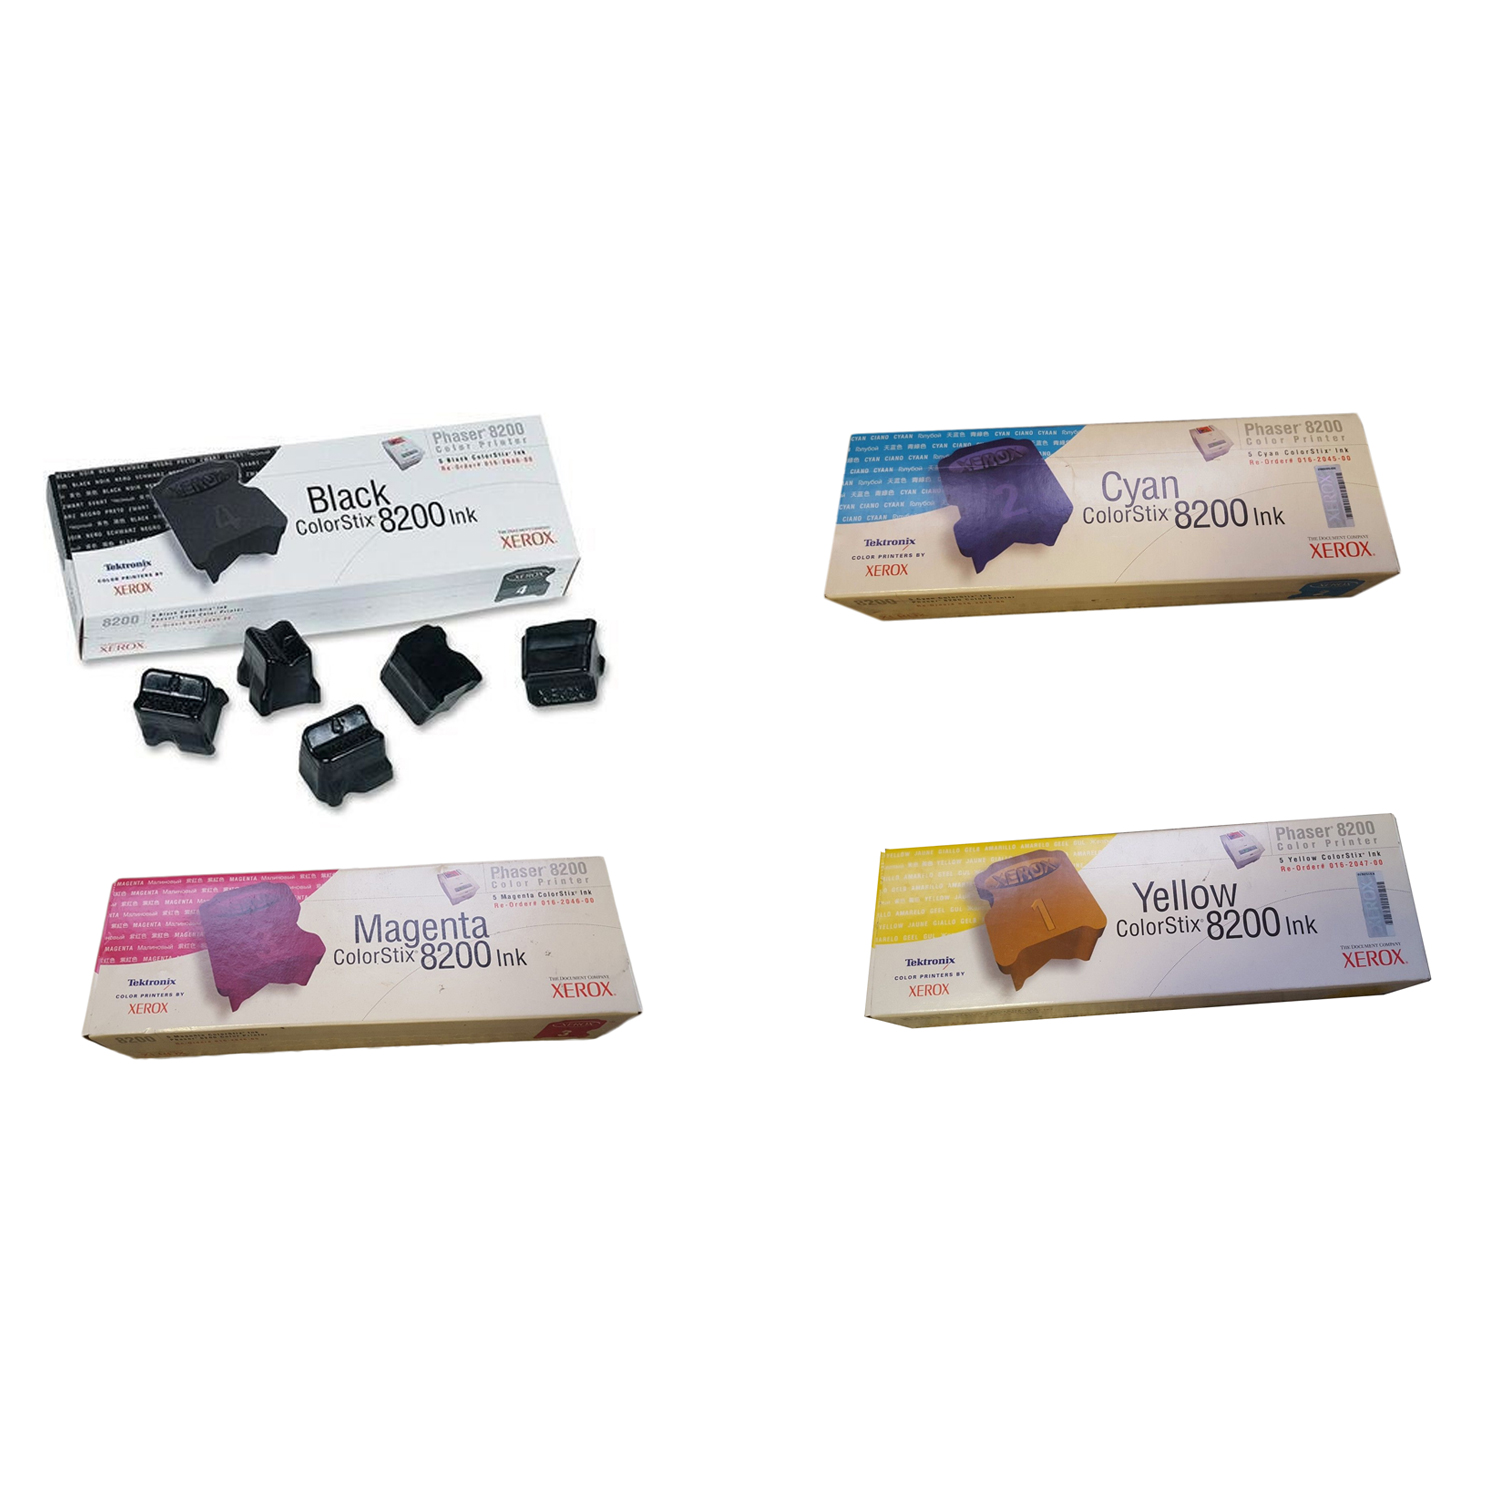 Original Xerox 16204 CMYK Multipack Set Of 20 Solid Inks (016204000 /016204500 /016204600 /016204700)